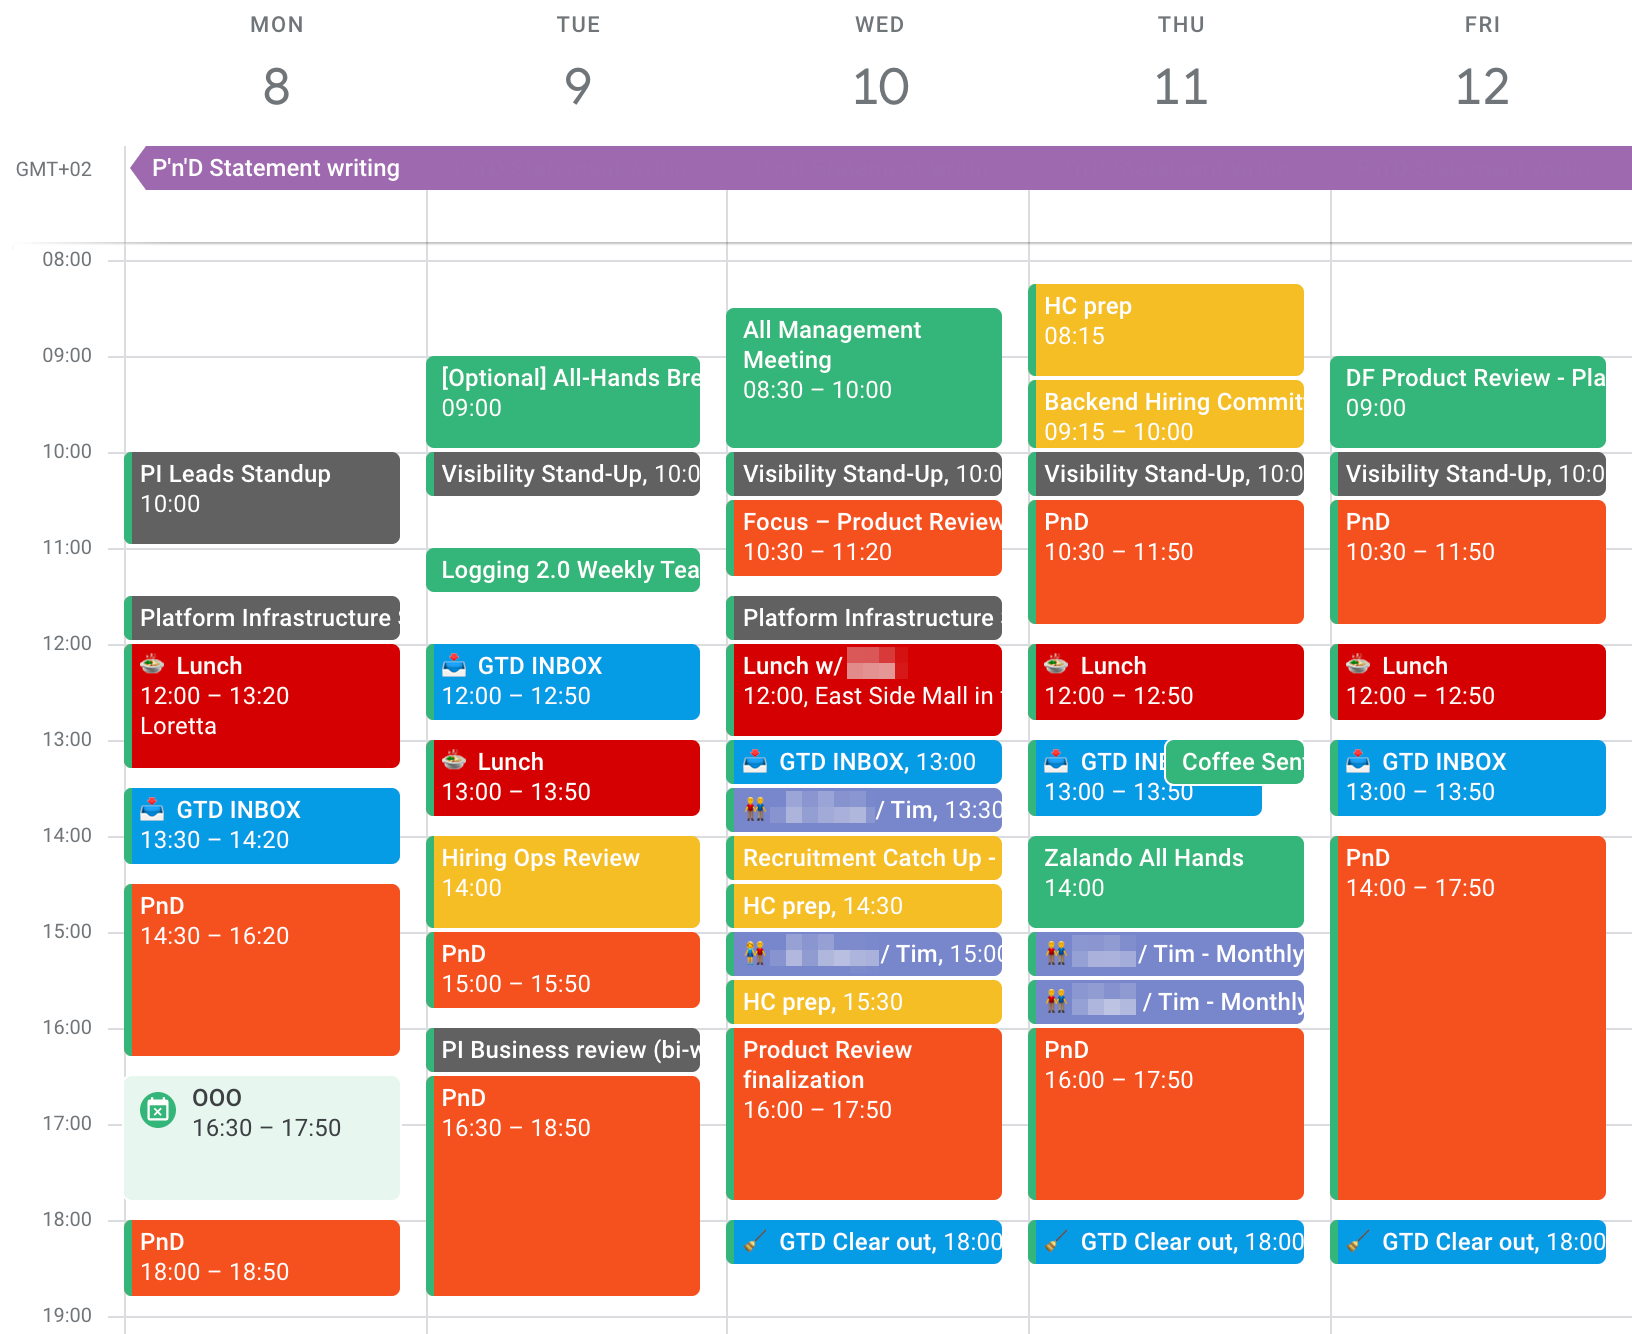 Screenshot of a week in my Google Calendar where I could focus on preparing documents for product review, performance assessment, and career development sessions. Roughly 40% of the 40 work hours are orange 'focus' blockers across the week.